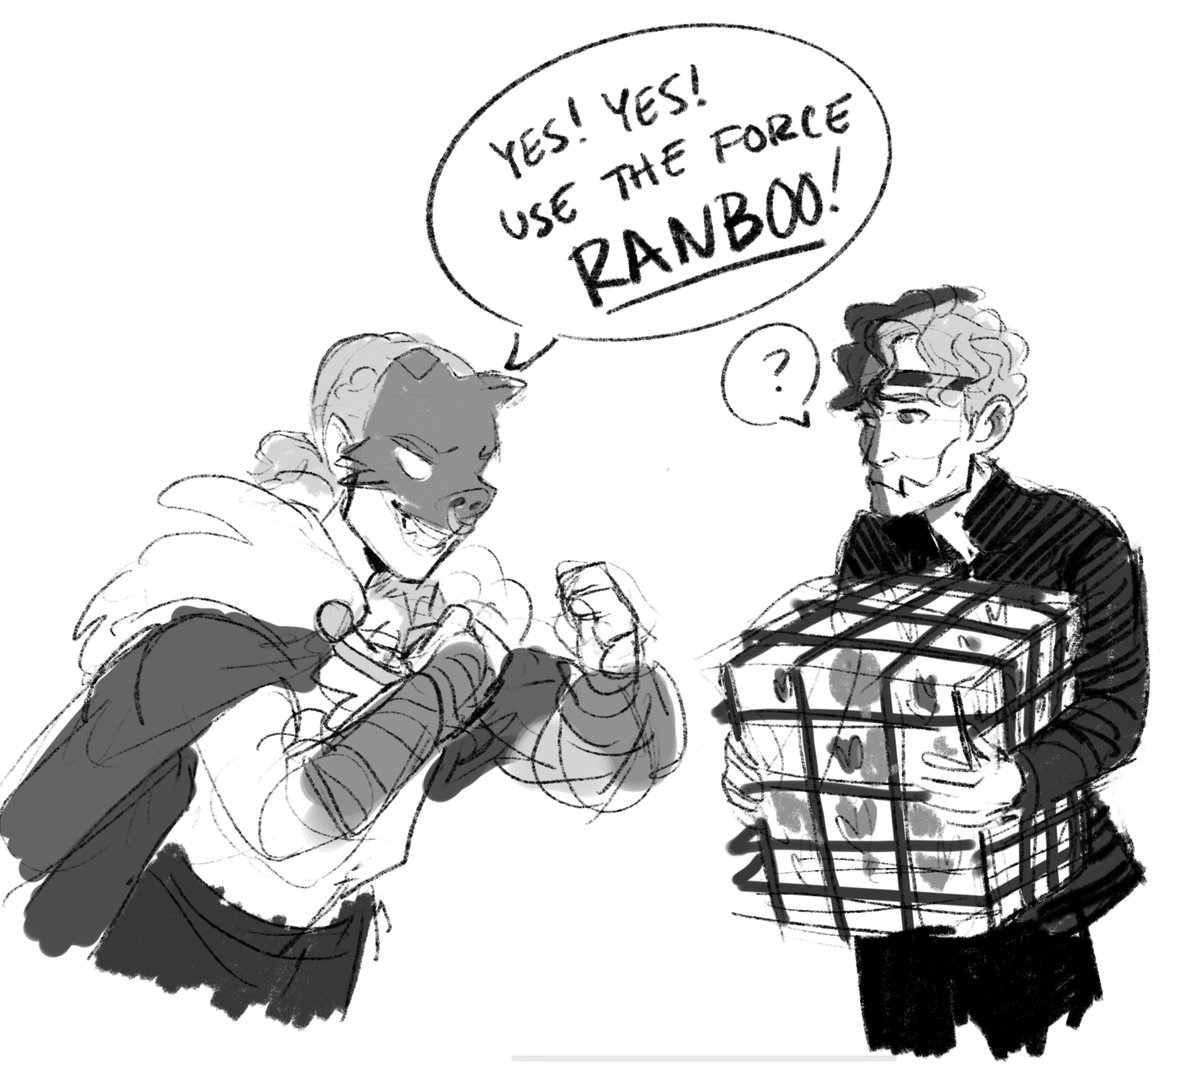 I don't know why this made me laugh so hard, but honestly all of their interactions give me life. #dreamsmpfanart #technofanart #ranboofanart